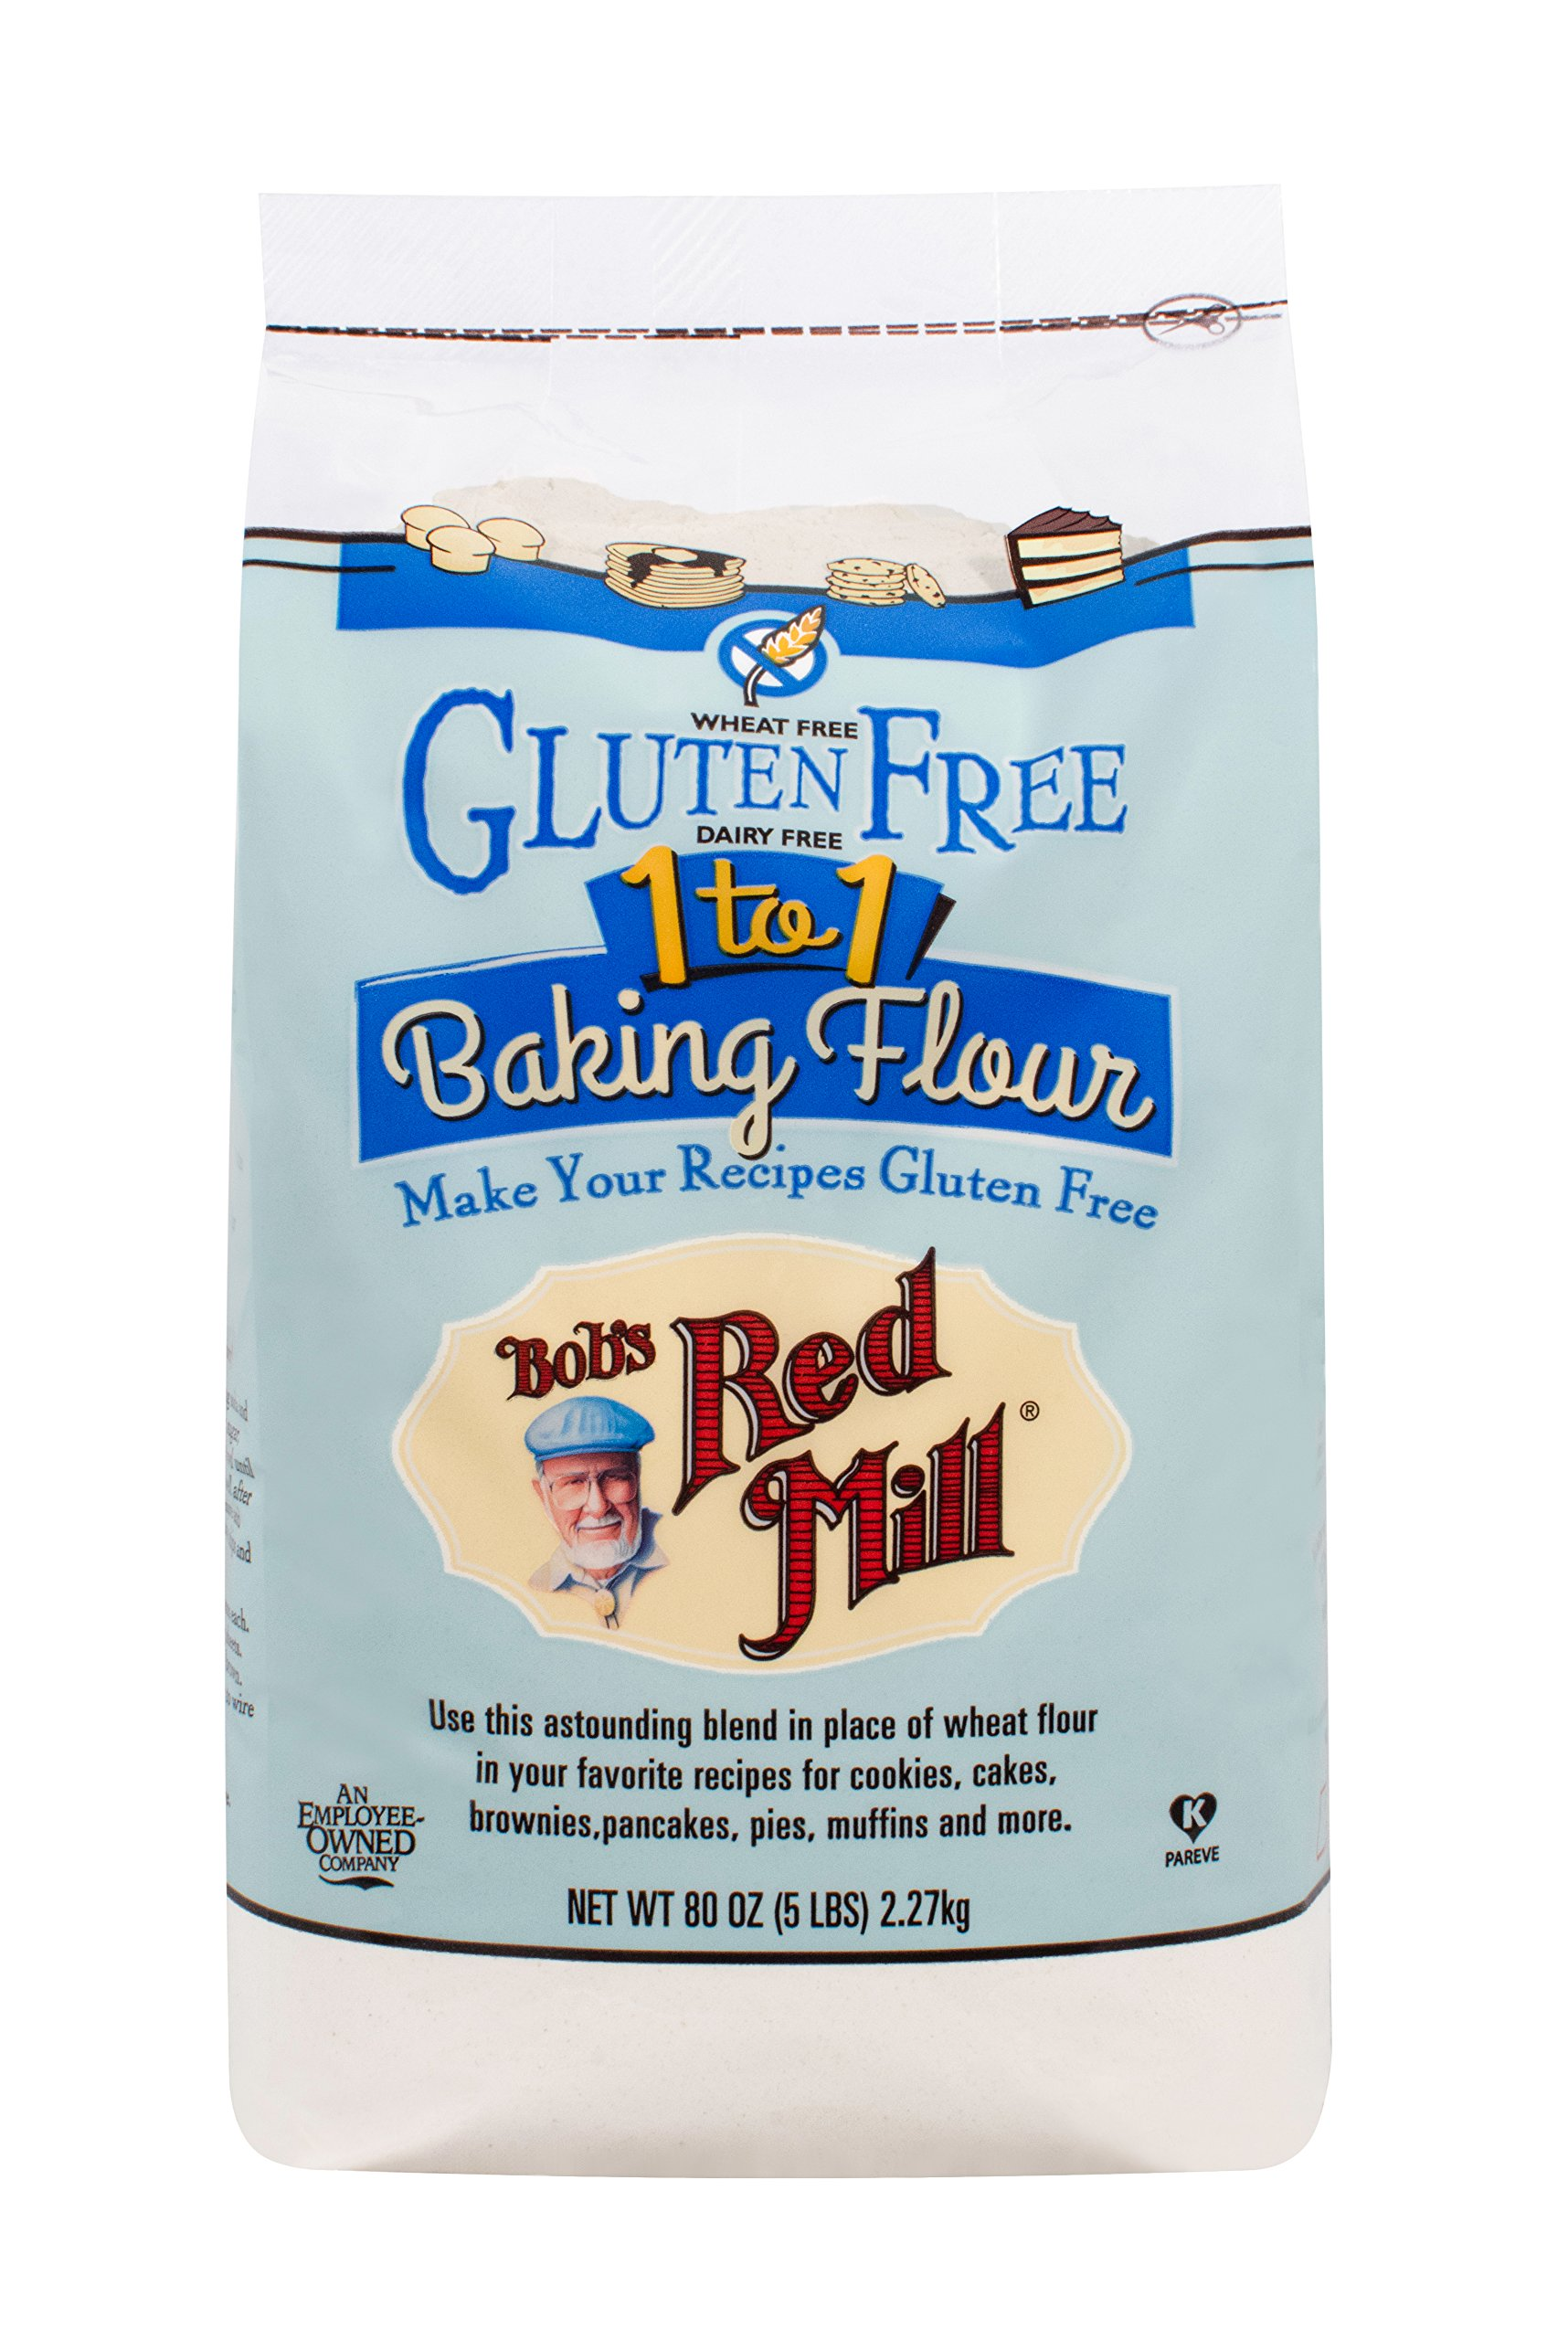 Bob's Red Mill Gluten Free 1-to-1 Baking Flour, 5 Pound by Bob's Red Mill